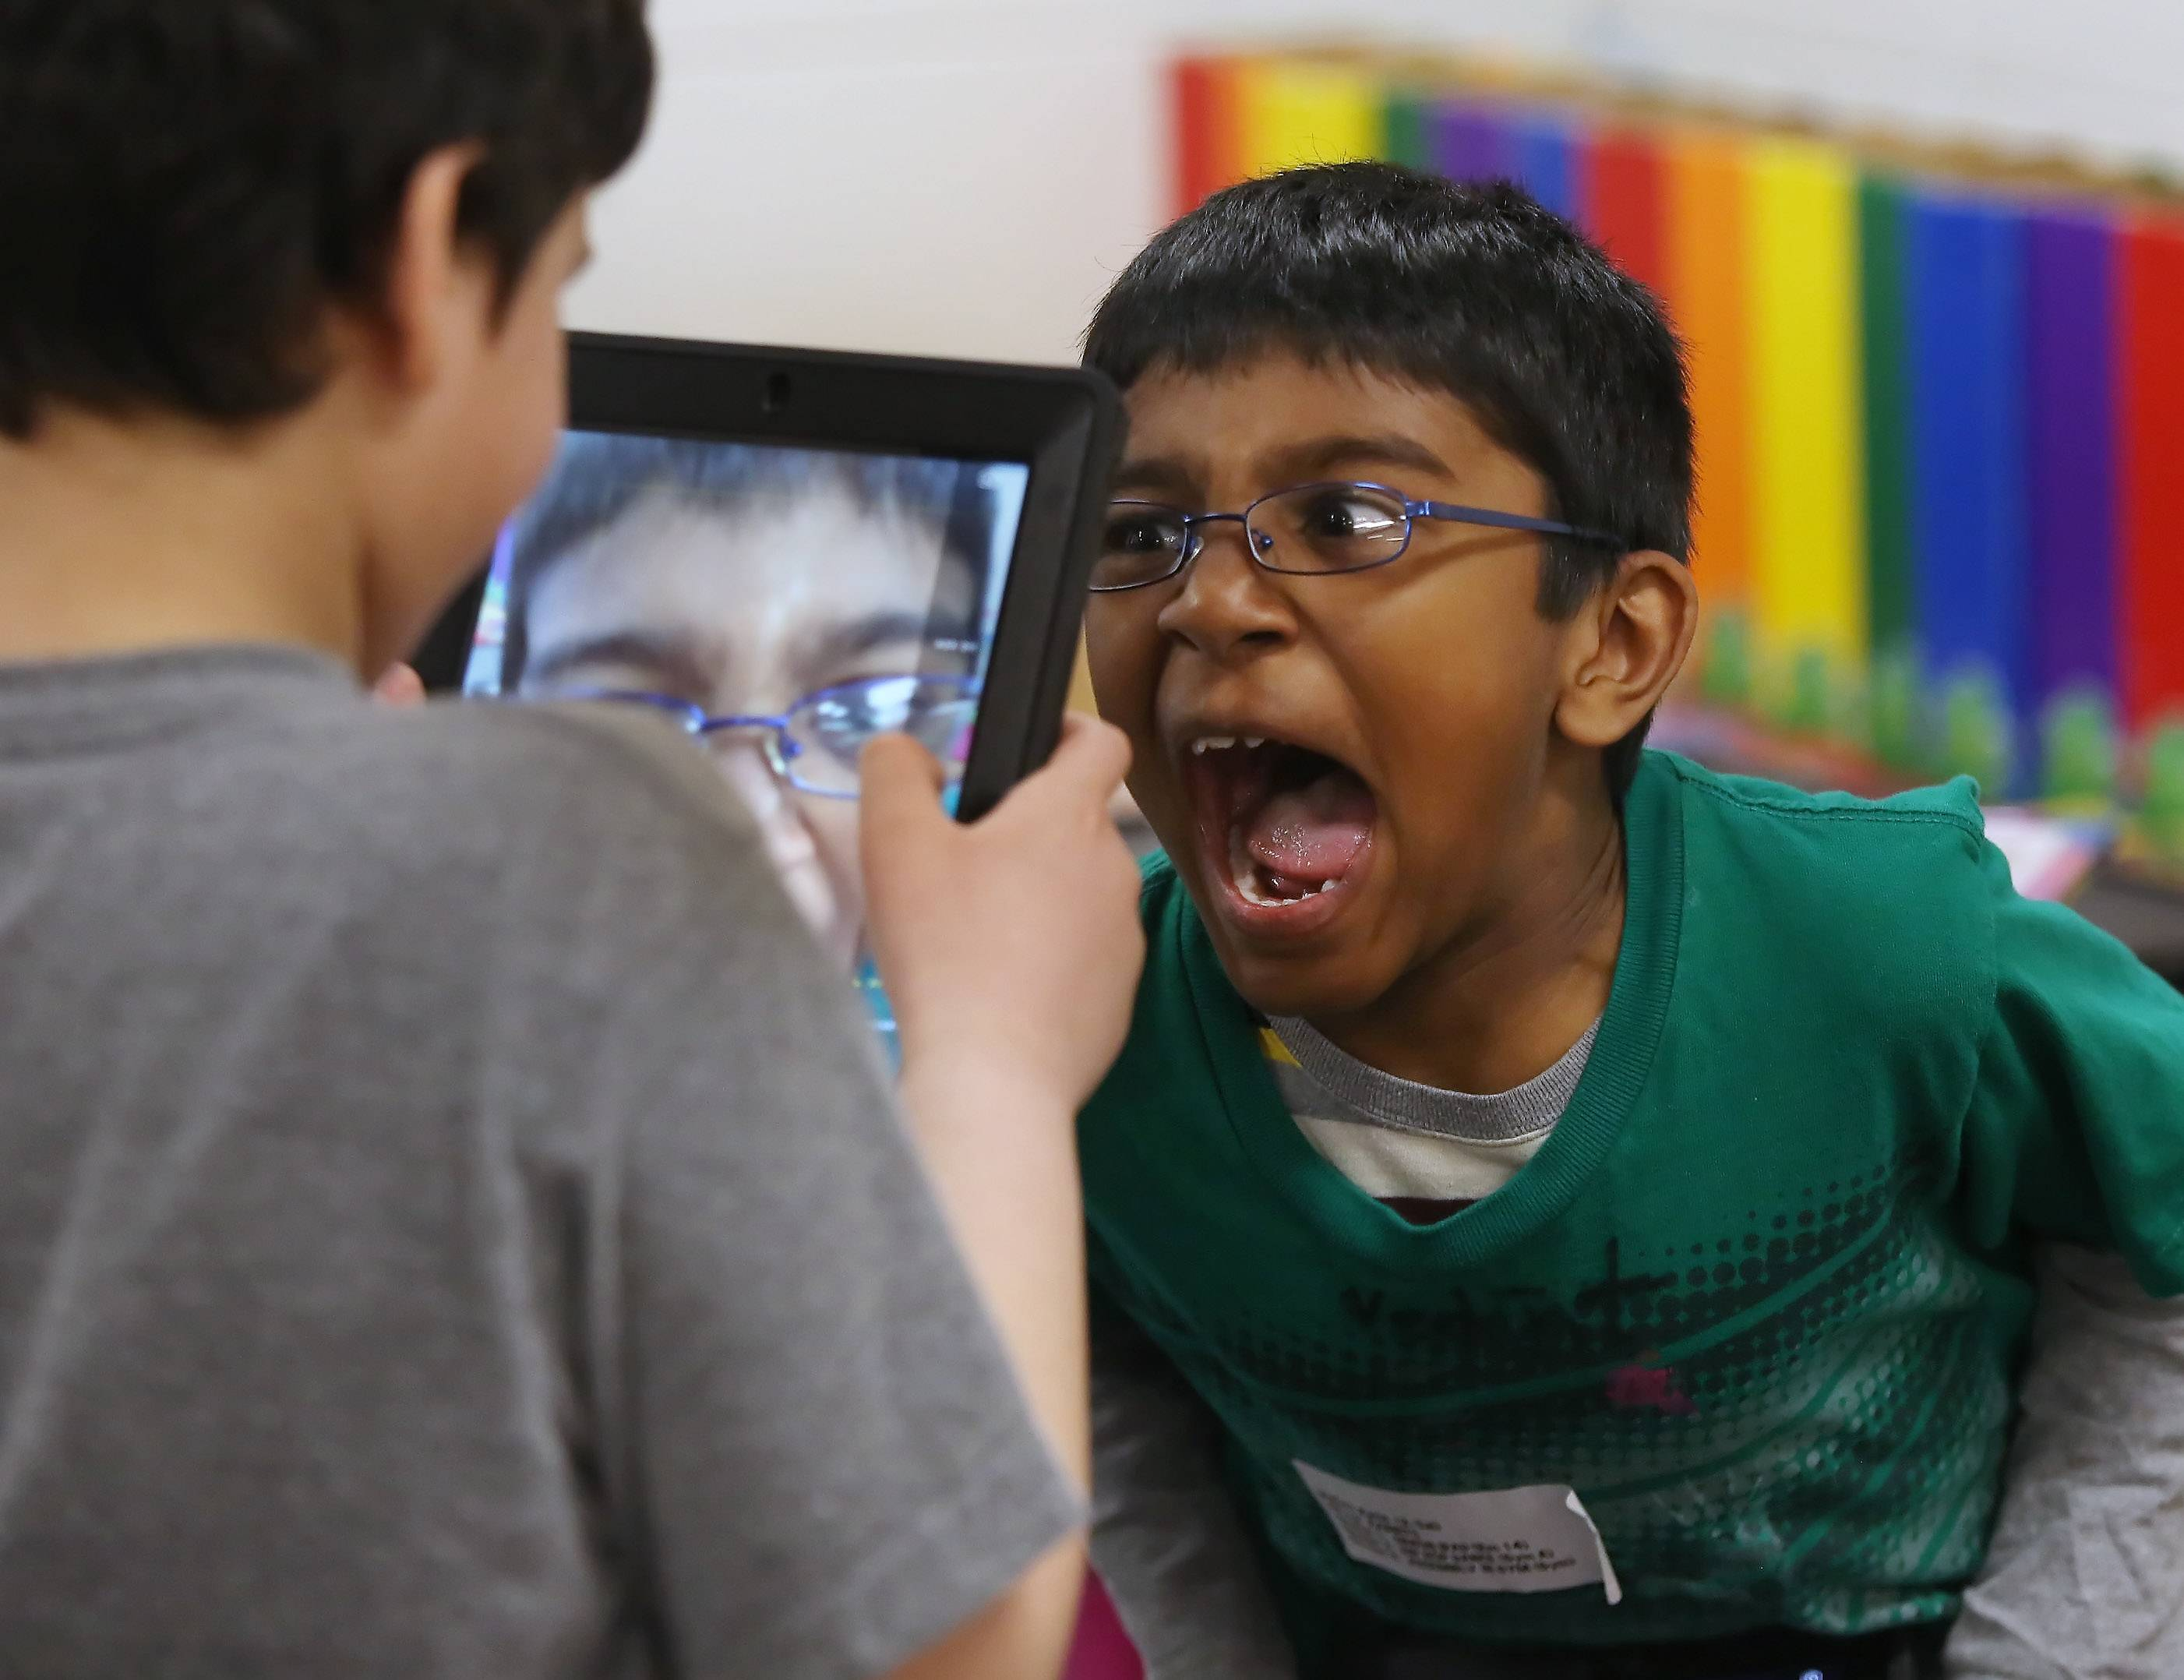 Second grader Vedant Rathi makes a face as Nicholas Rayyan takes his picture with an iPad during Explore the Arts day at Laura B. Sprague School in Lincolnshire on Thursday. The students then took the picture and changed it into a Picasso-style artwork using a special art app.